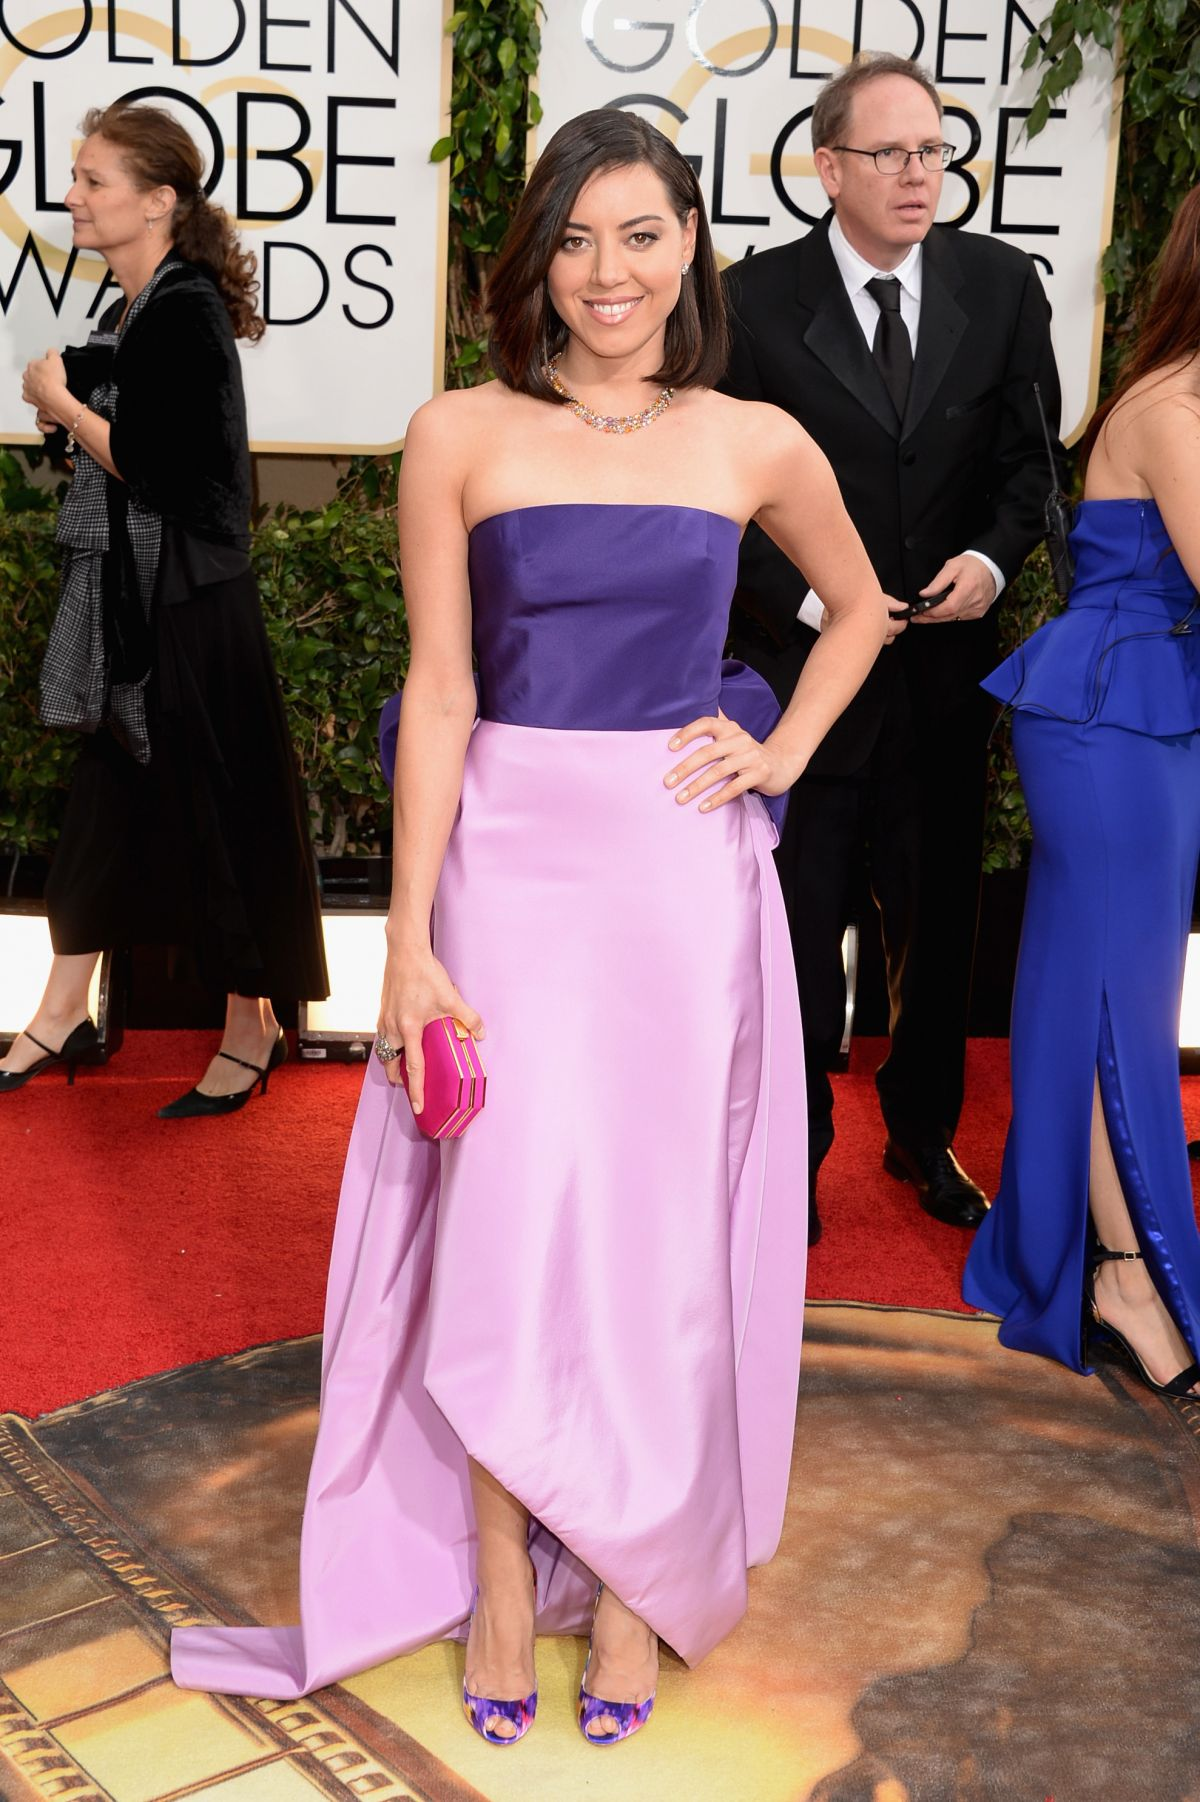 Aubrey Plaza At The 71st Annual Golden Globe Awards In Beverly Hills